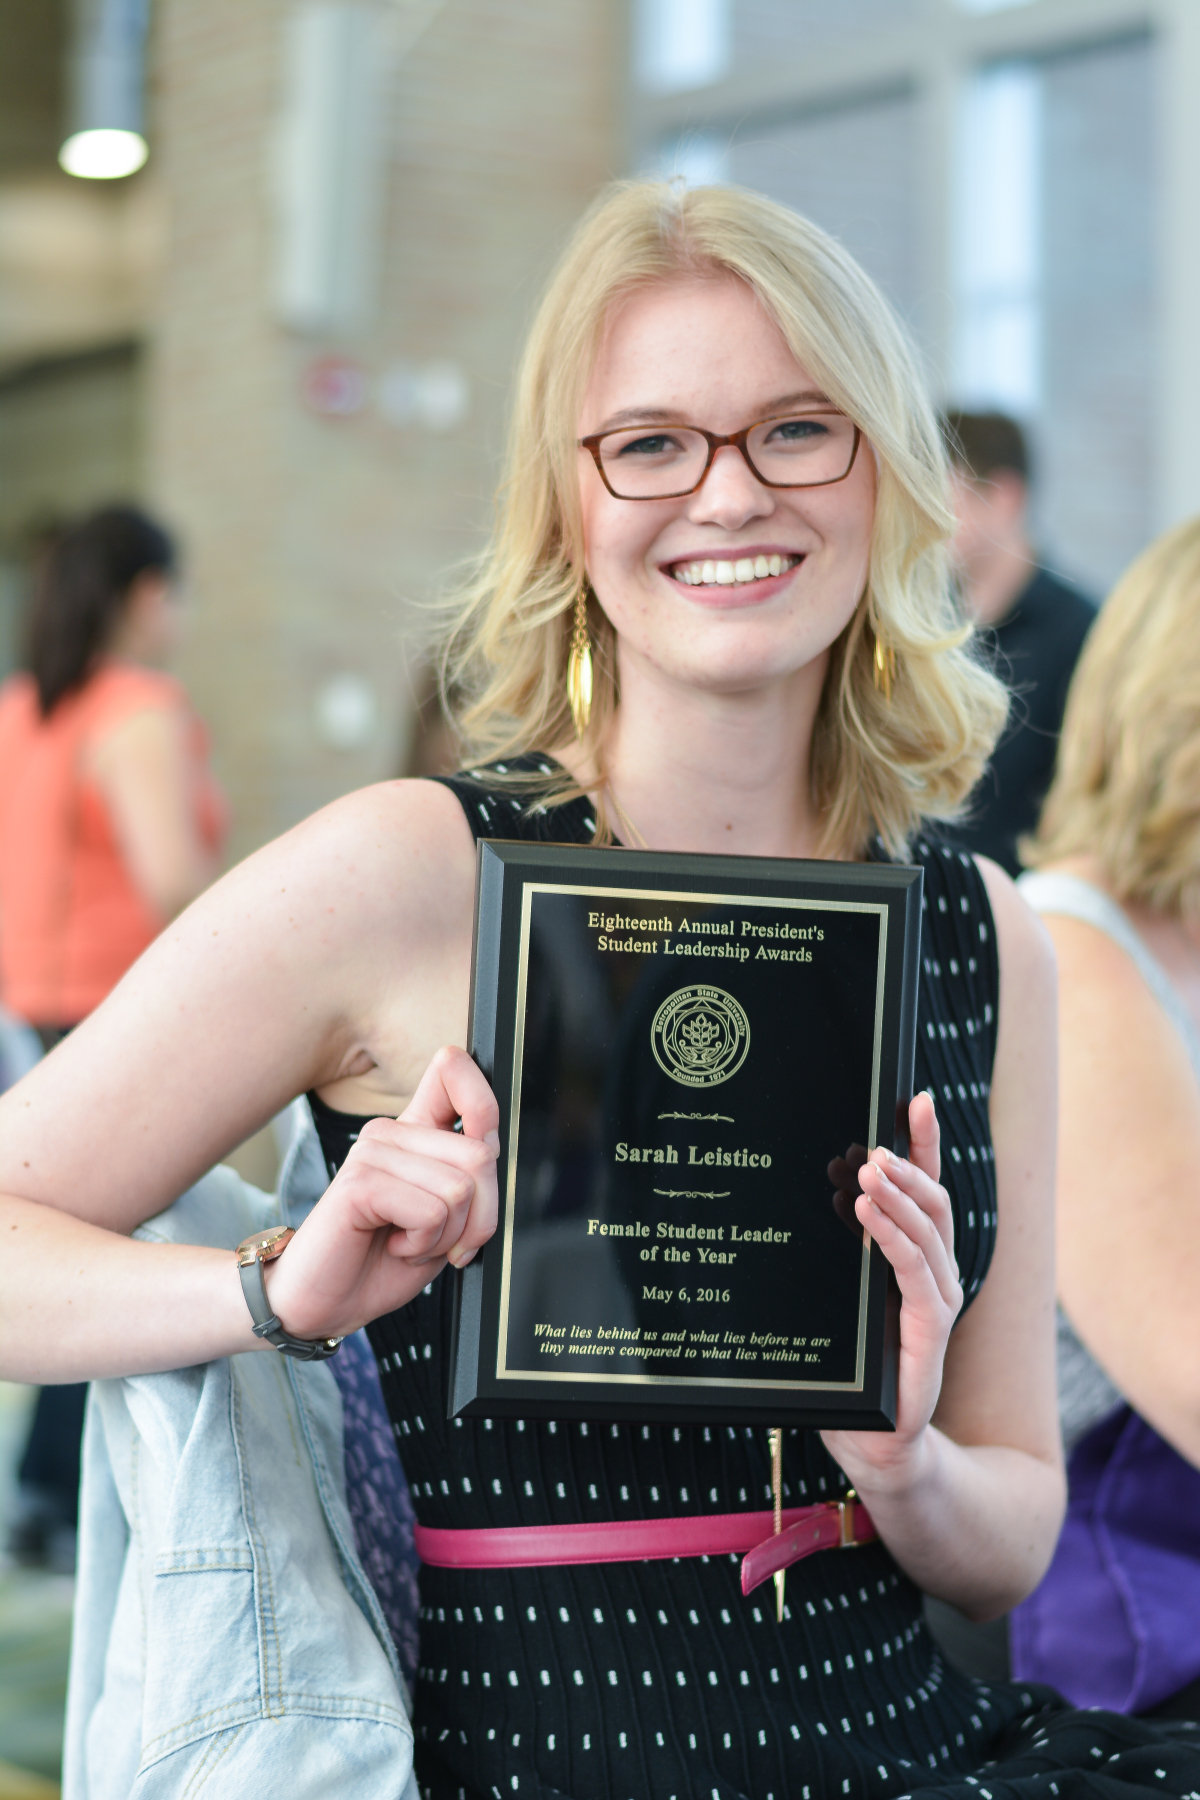 Sarah Leistico, Female Student Leader of the Year